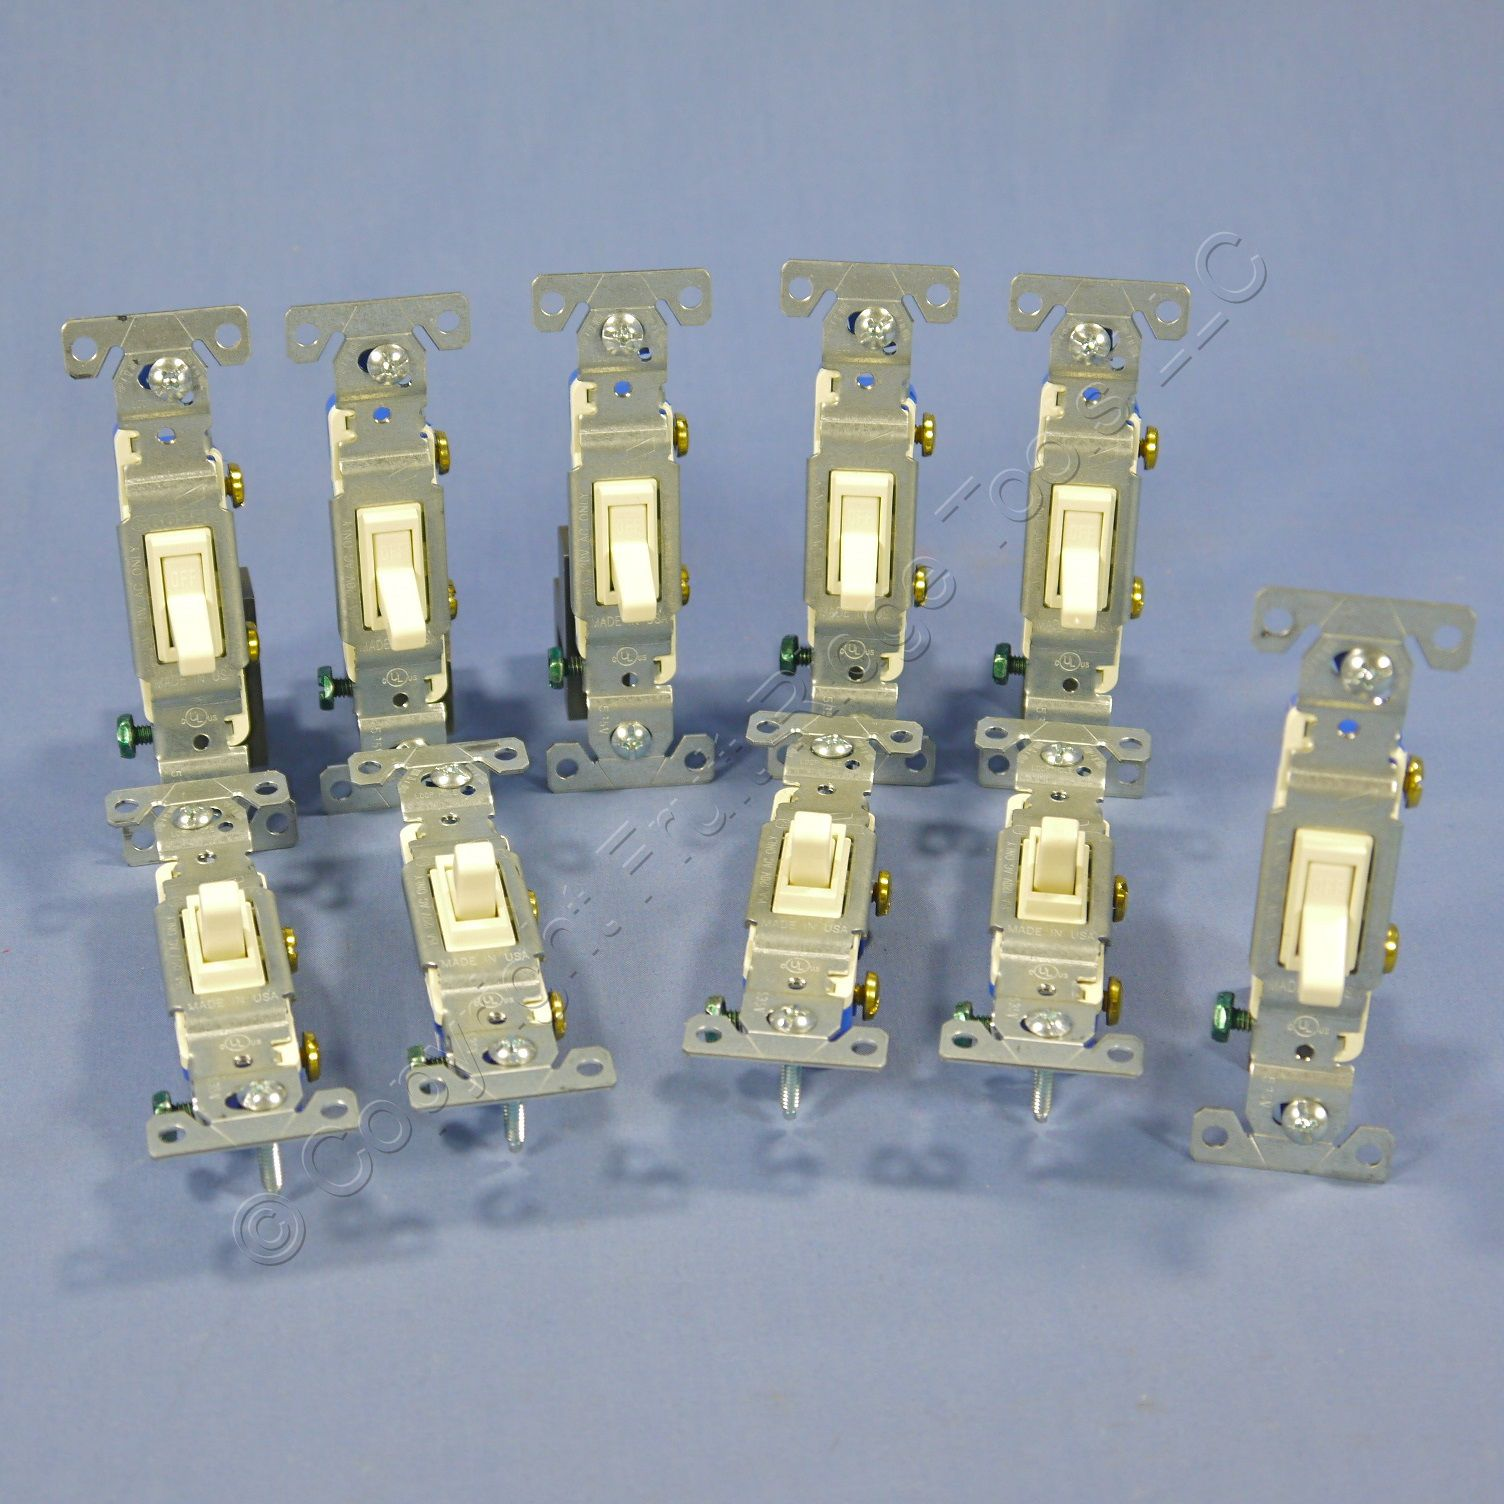 10 Cooper Almond Toggle Wall Light Switches Quiet Single Pole 15A 120V 1301-7A